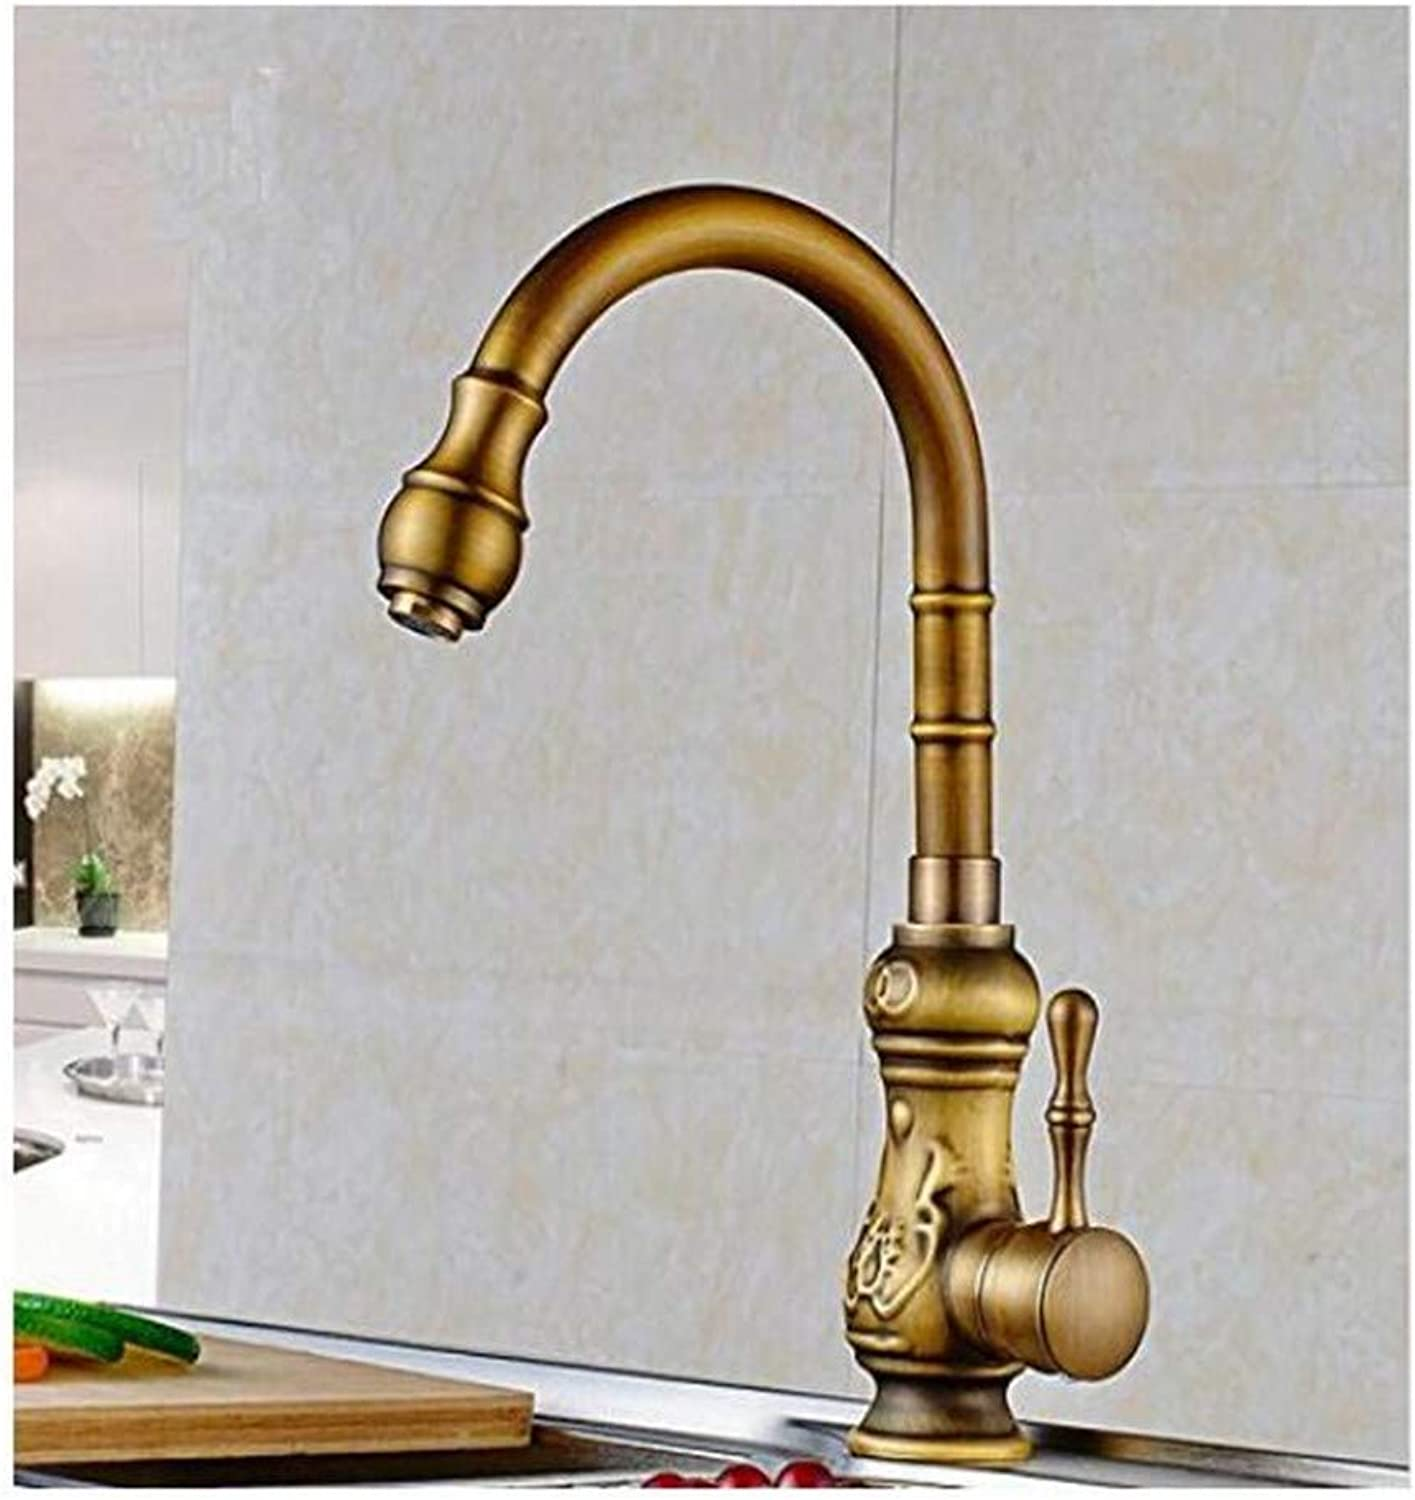 Faucet Kitchen Bathroom Retro Mixer Faucet Kitchen Faucet Antique Brass Bathroom Basin Faucet Swivel Spout Vanity Sink Mixer Tap Single Handle